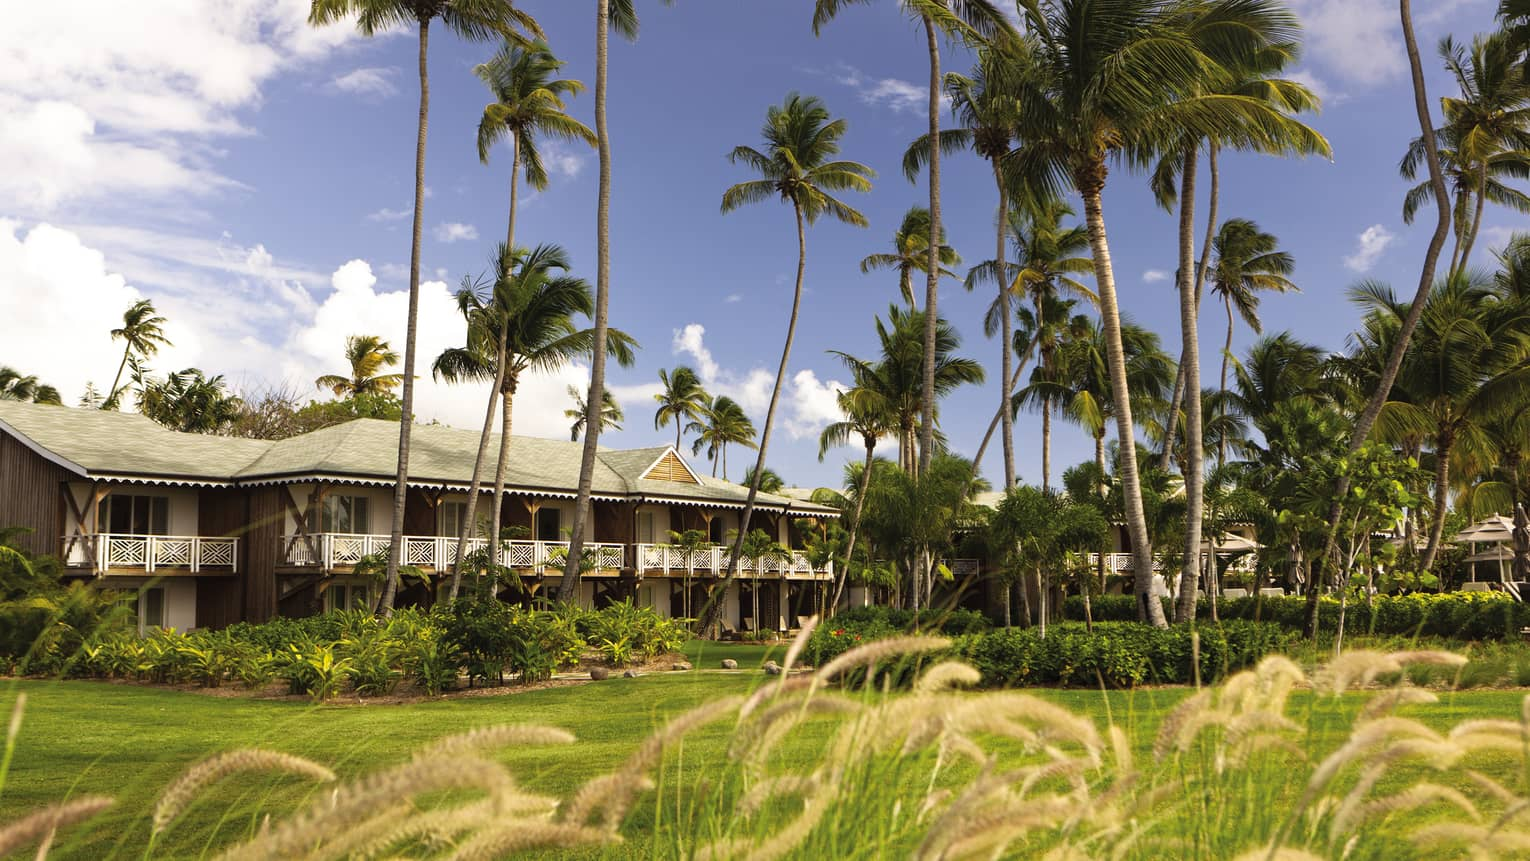 Tall palm trees blow in breeze over Four Seasons Resort Nevis, green lawn